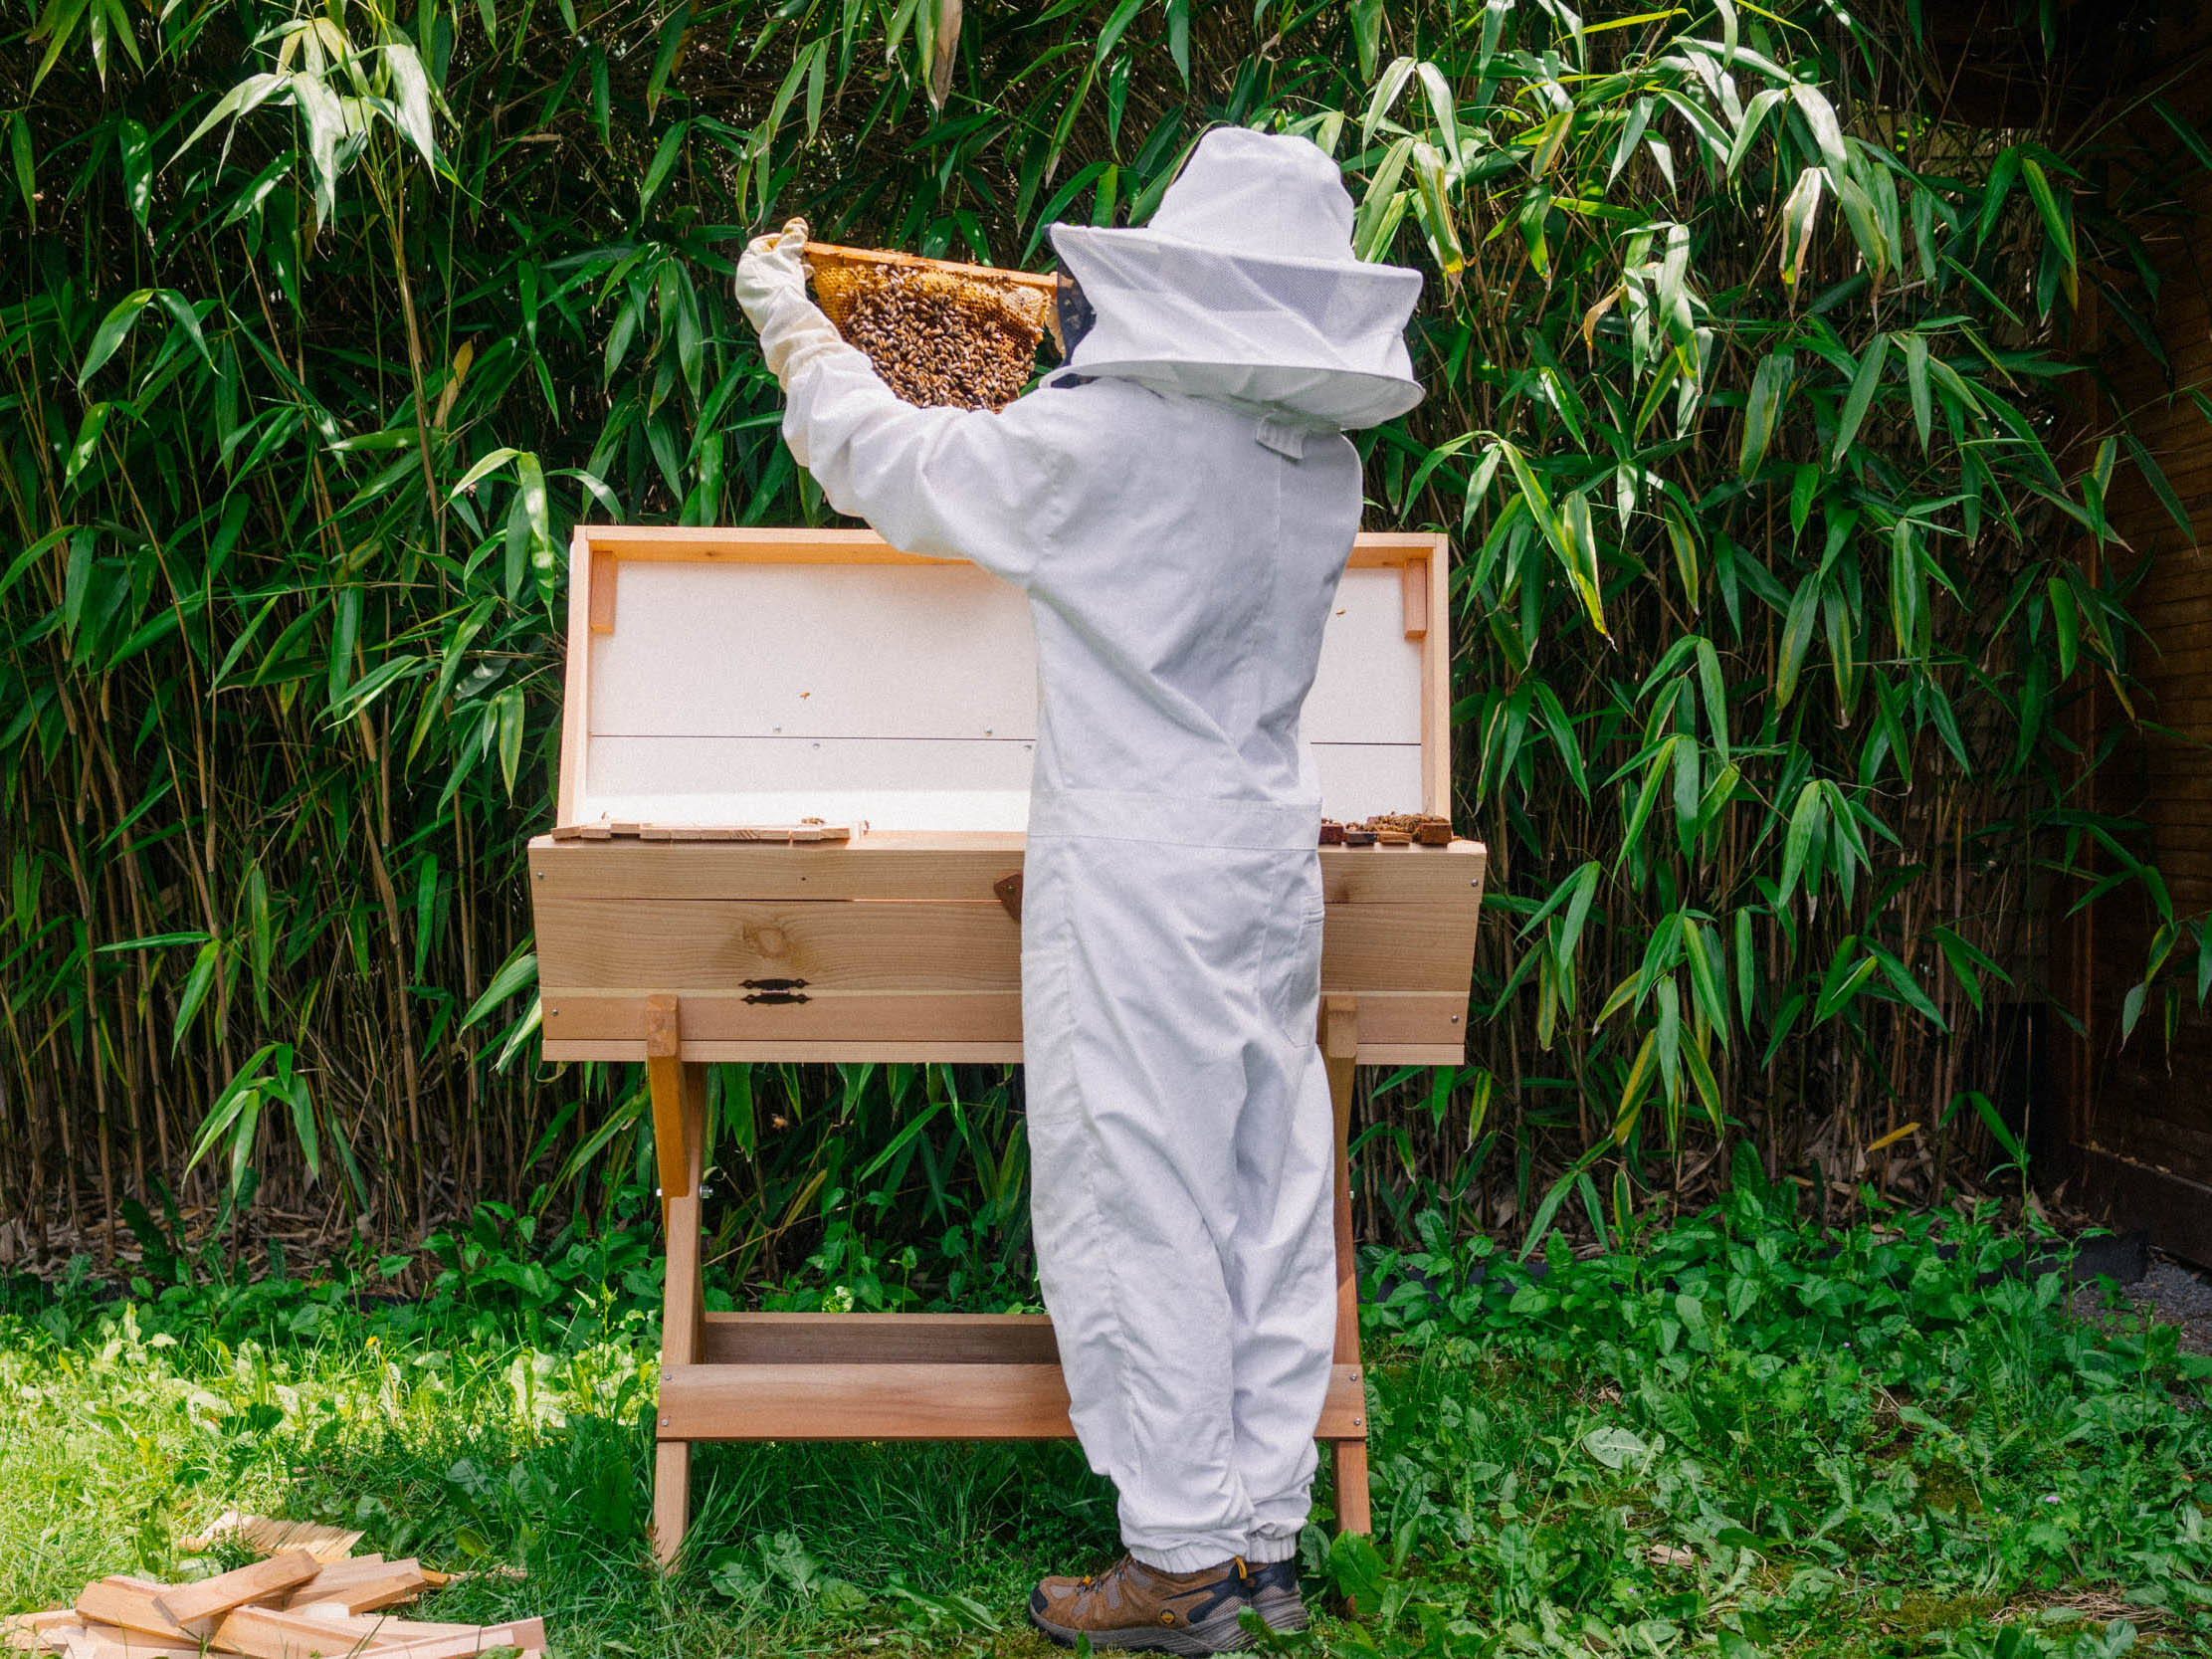 FABQs: Can I REALLY Keep Bees in My Backyard? - by Bee & Bloom